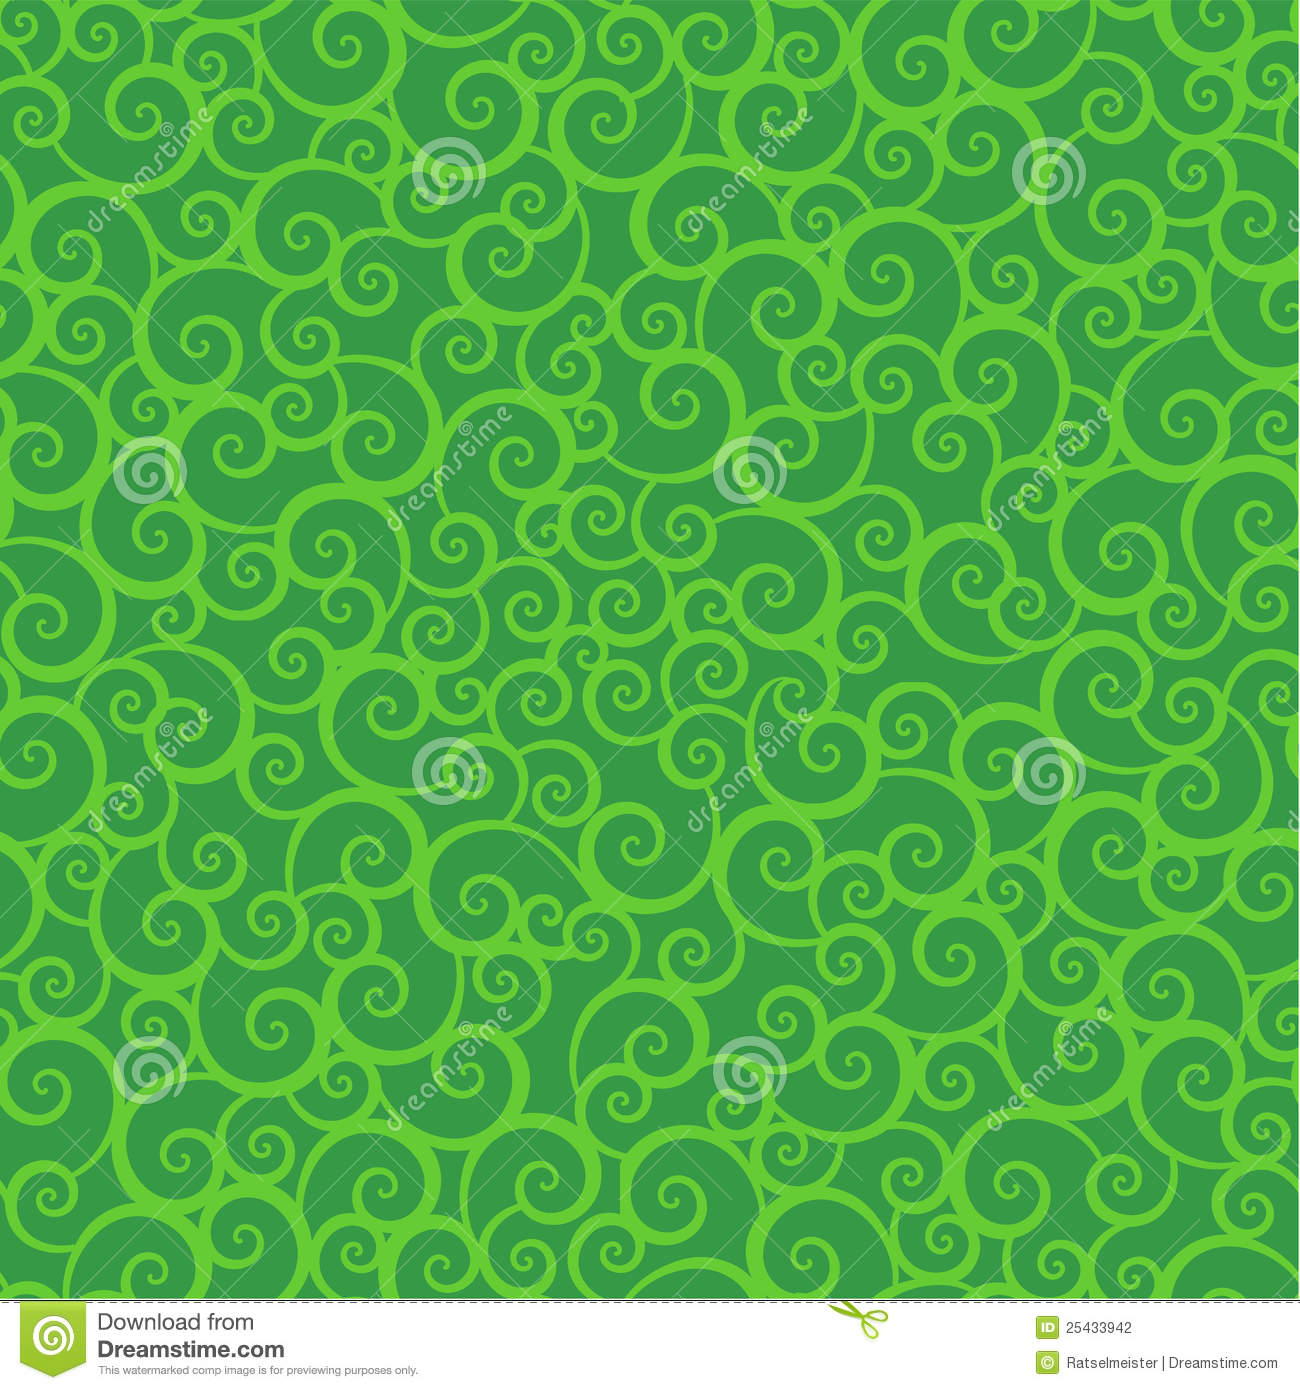 Black And White Leaf Wallpaper Seamless Green Swirls Pattern Stock Vector Illustration